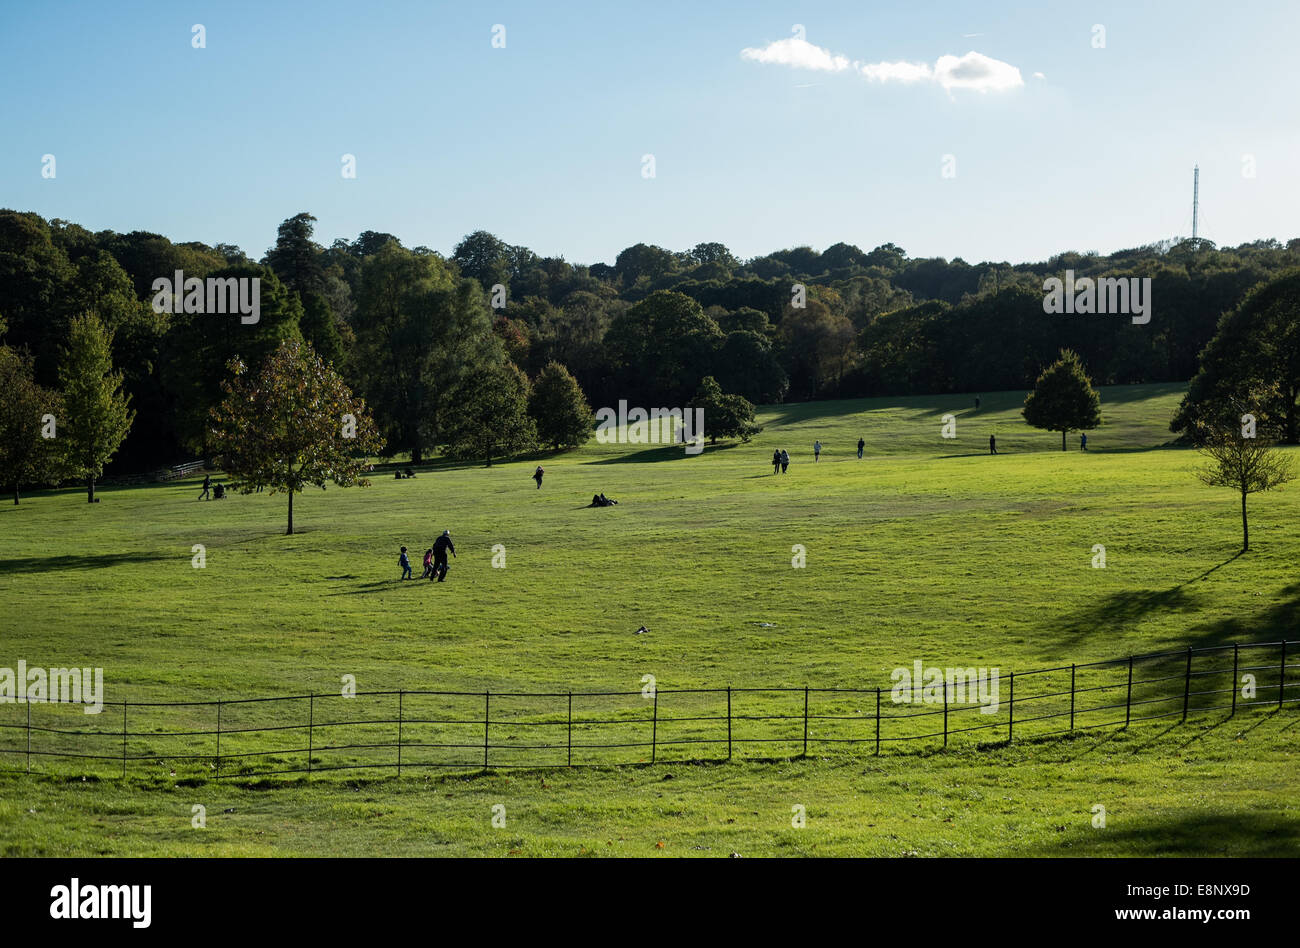 People enjoy the beautiful weather in Hampstead Heath in London in the late afternoon. - Stock Image